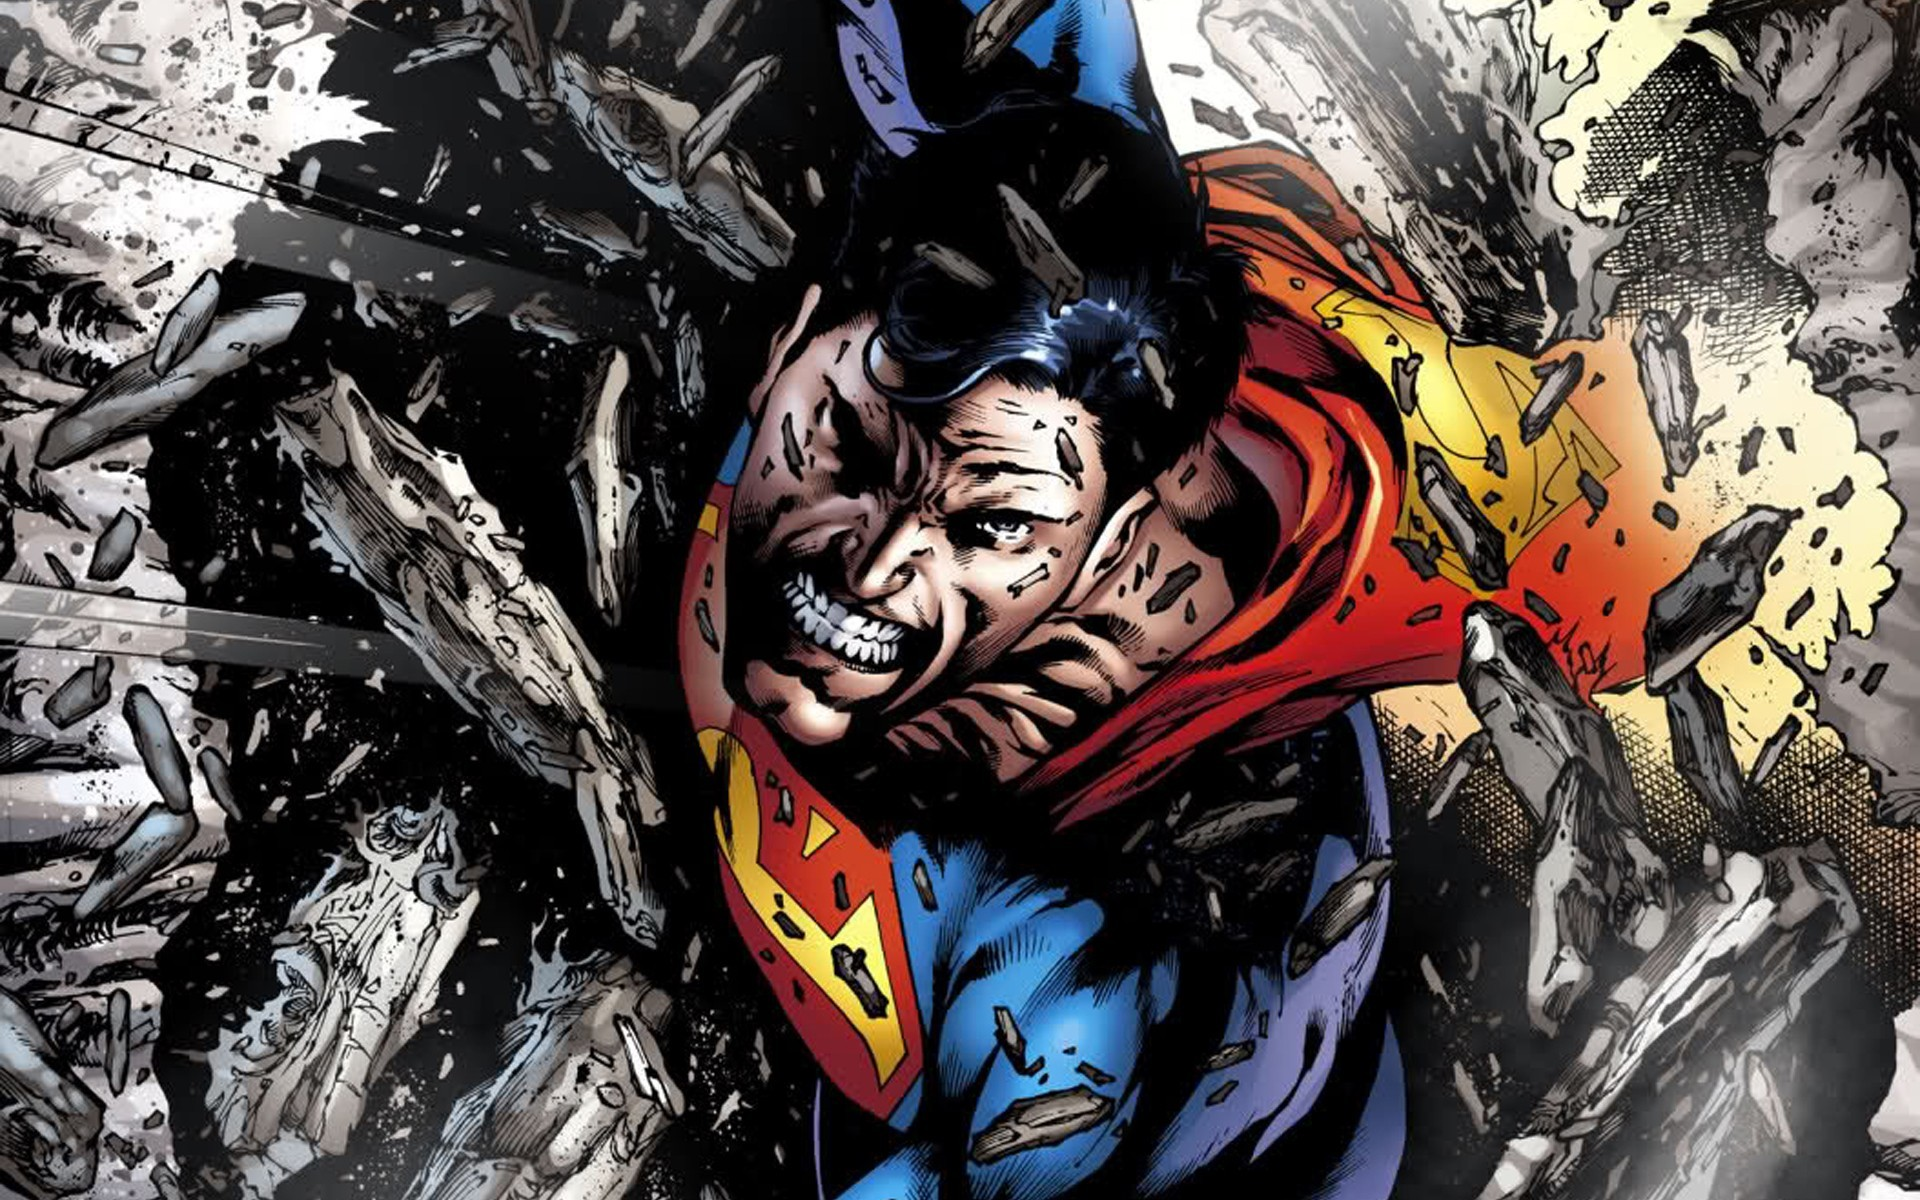 1920x1200 Superman Computer Wallpapers, Desktop Backgrounds Id: 386241